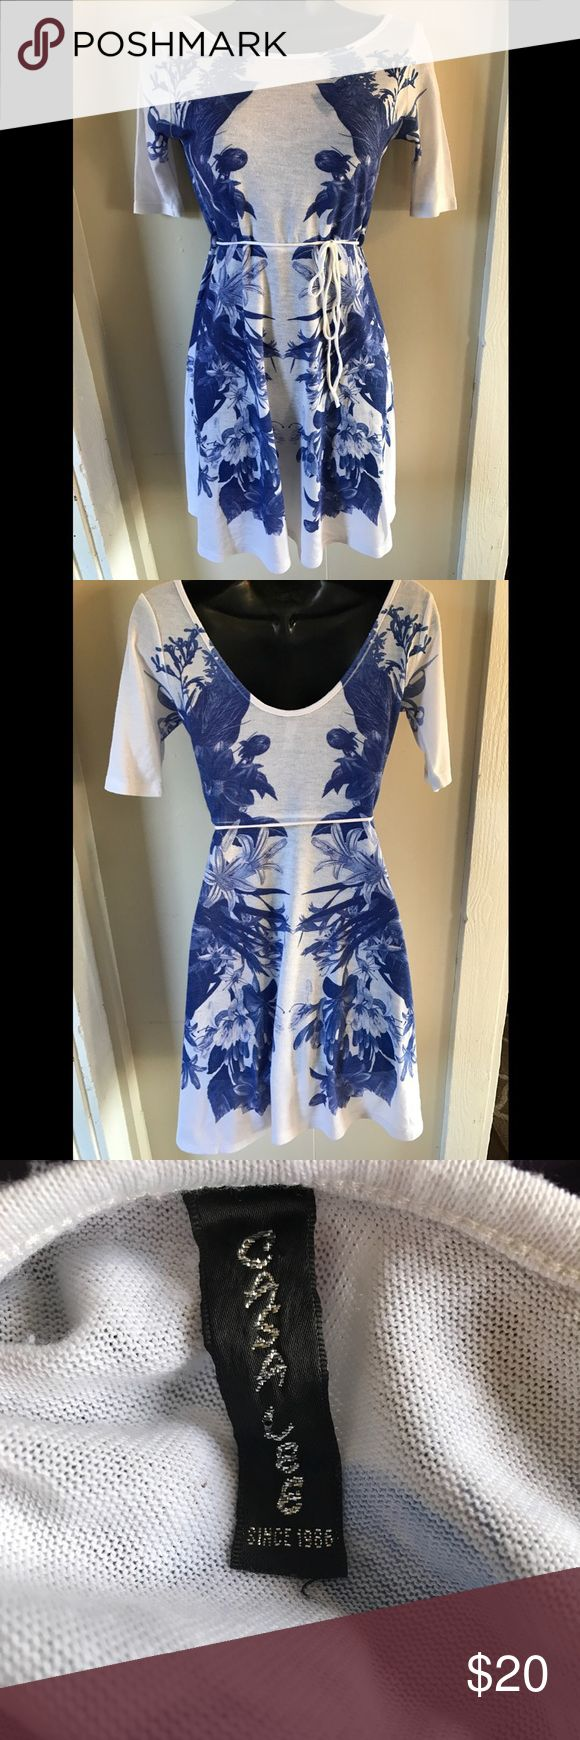 Printed Knit Dress Printed blue and white knit dress. Worn once in great condition. Gasa Lee Dresses Mini